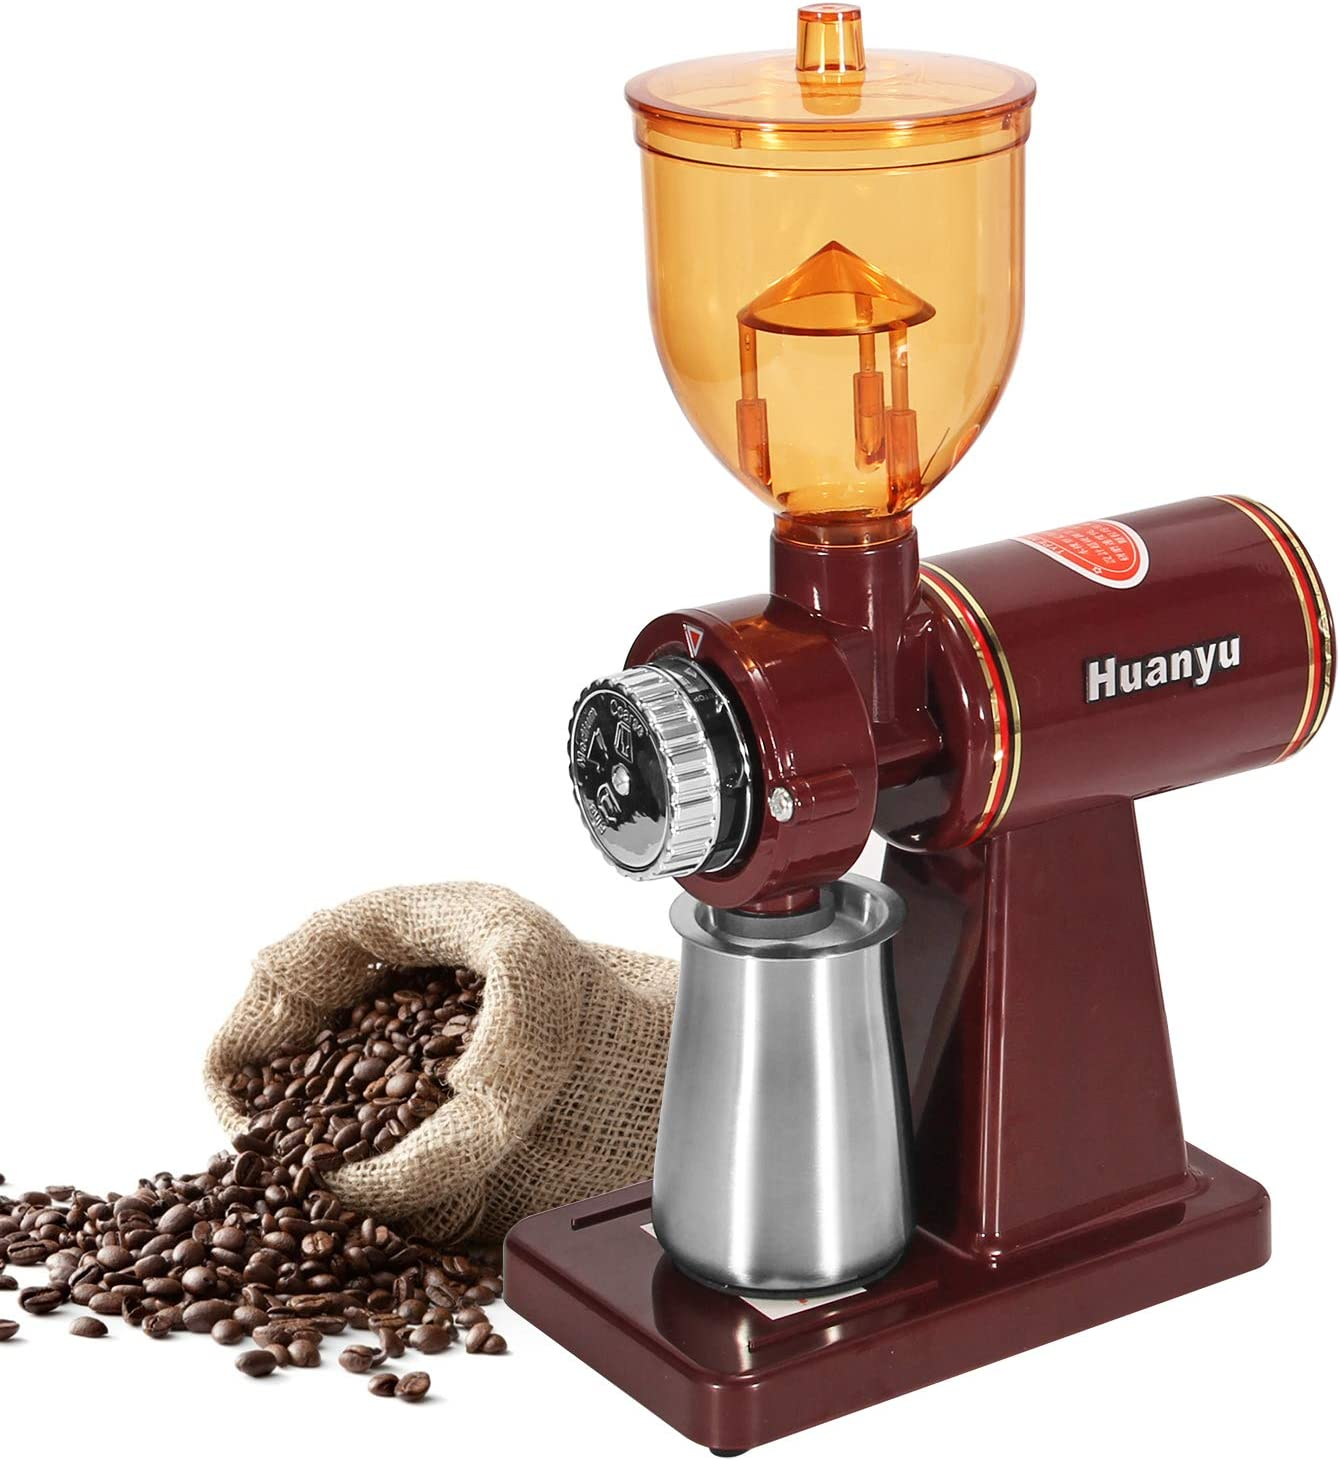 Huanyu Electric Coffee Bean Grinder 250G Commercial&Home Milling Machine 200W Grinding Machine for Beans Nuts Spice Automatic Burr Grinder Professional Miller 8 Fine - Coarse Grind Size Settings Stainless Steel Cutter Pulverizer (110V, Red with Anti-jumping Beans Hopper)